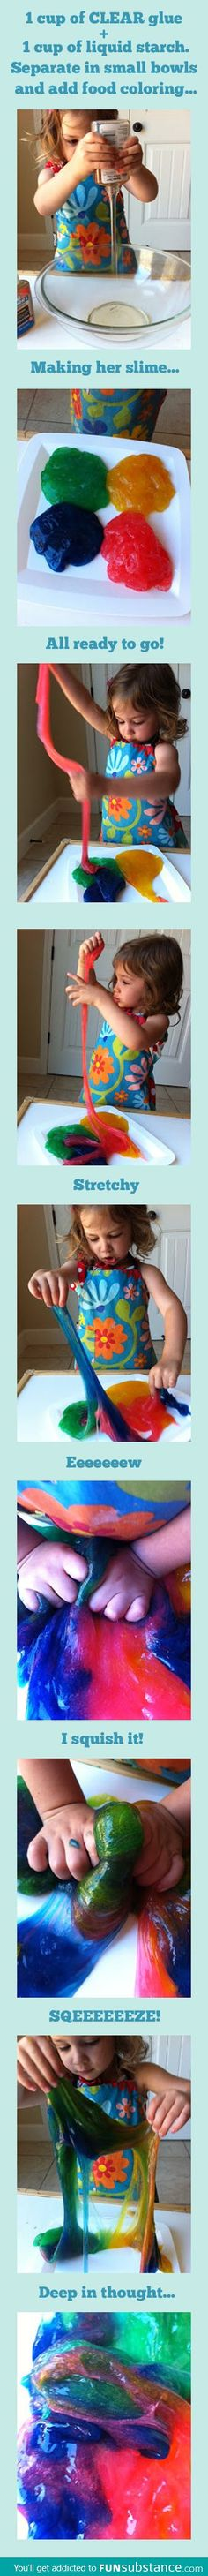 Homemade rainbow slime for kids! Create DIY slime in minutes using 3 simple ingredients.